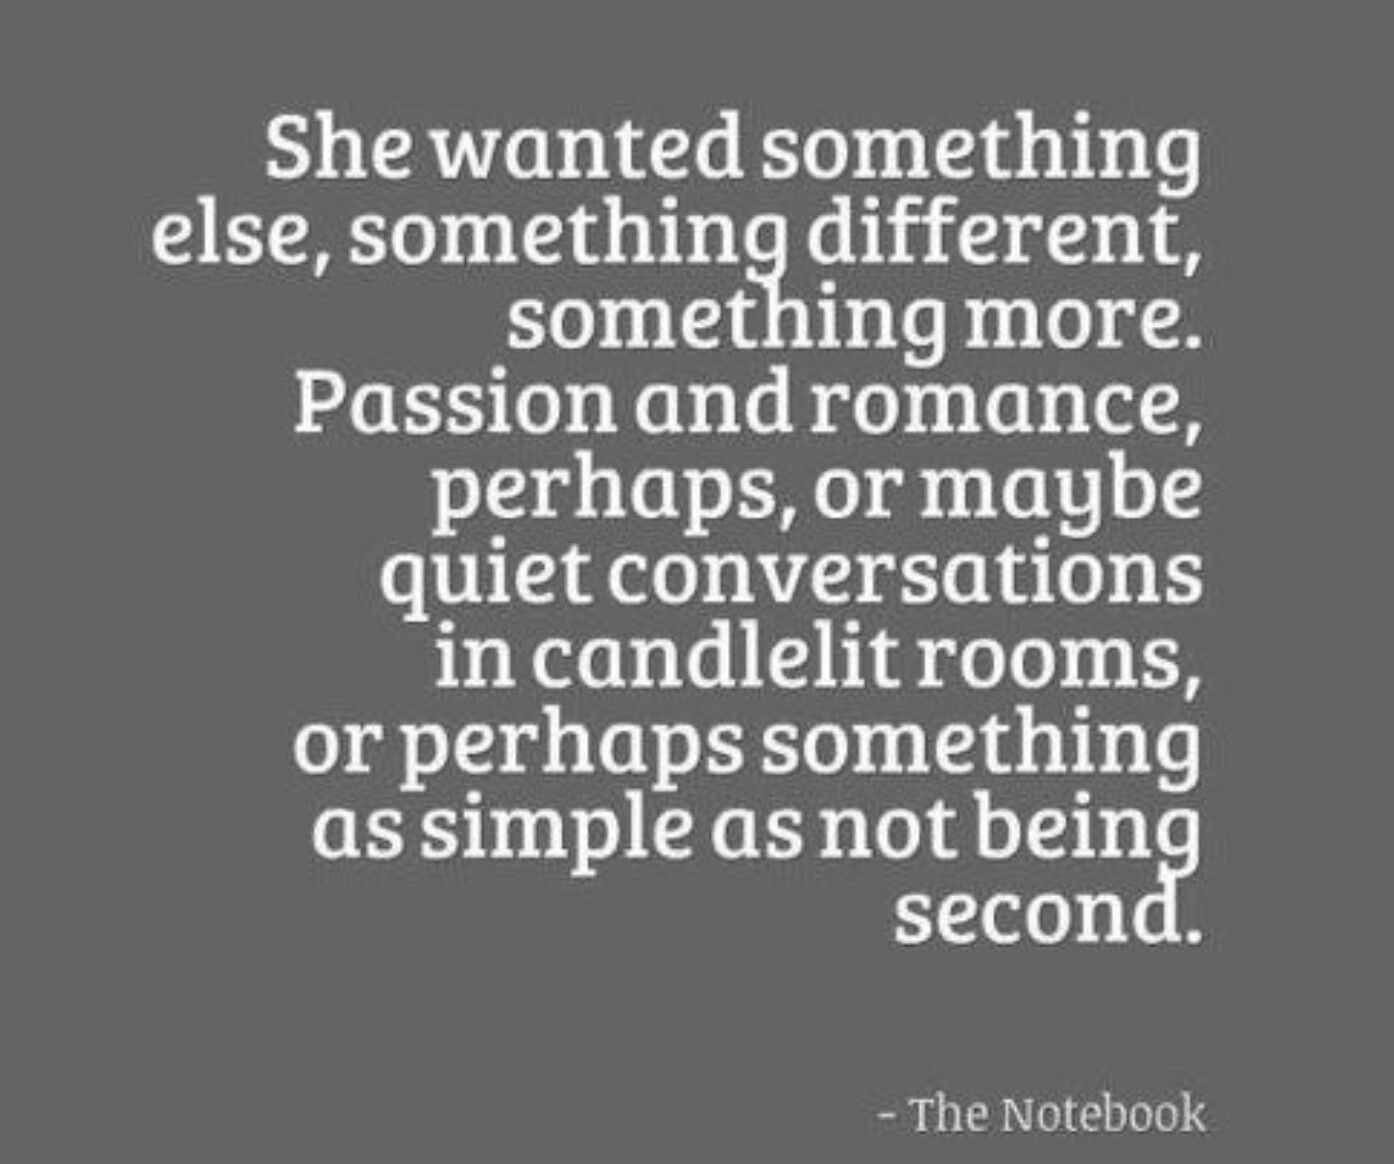 Deep Love Quotes For Her Maybe He Does Too  Truth  Pinterest  Wisdom Truths And Thoughts